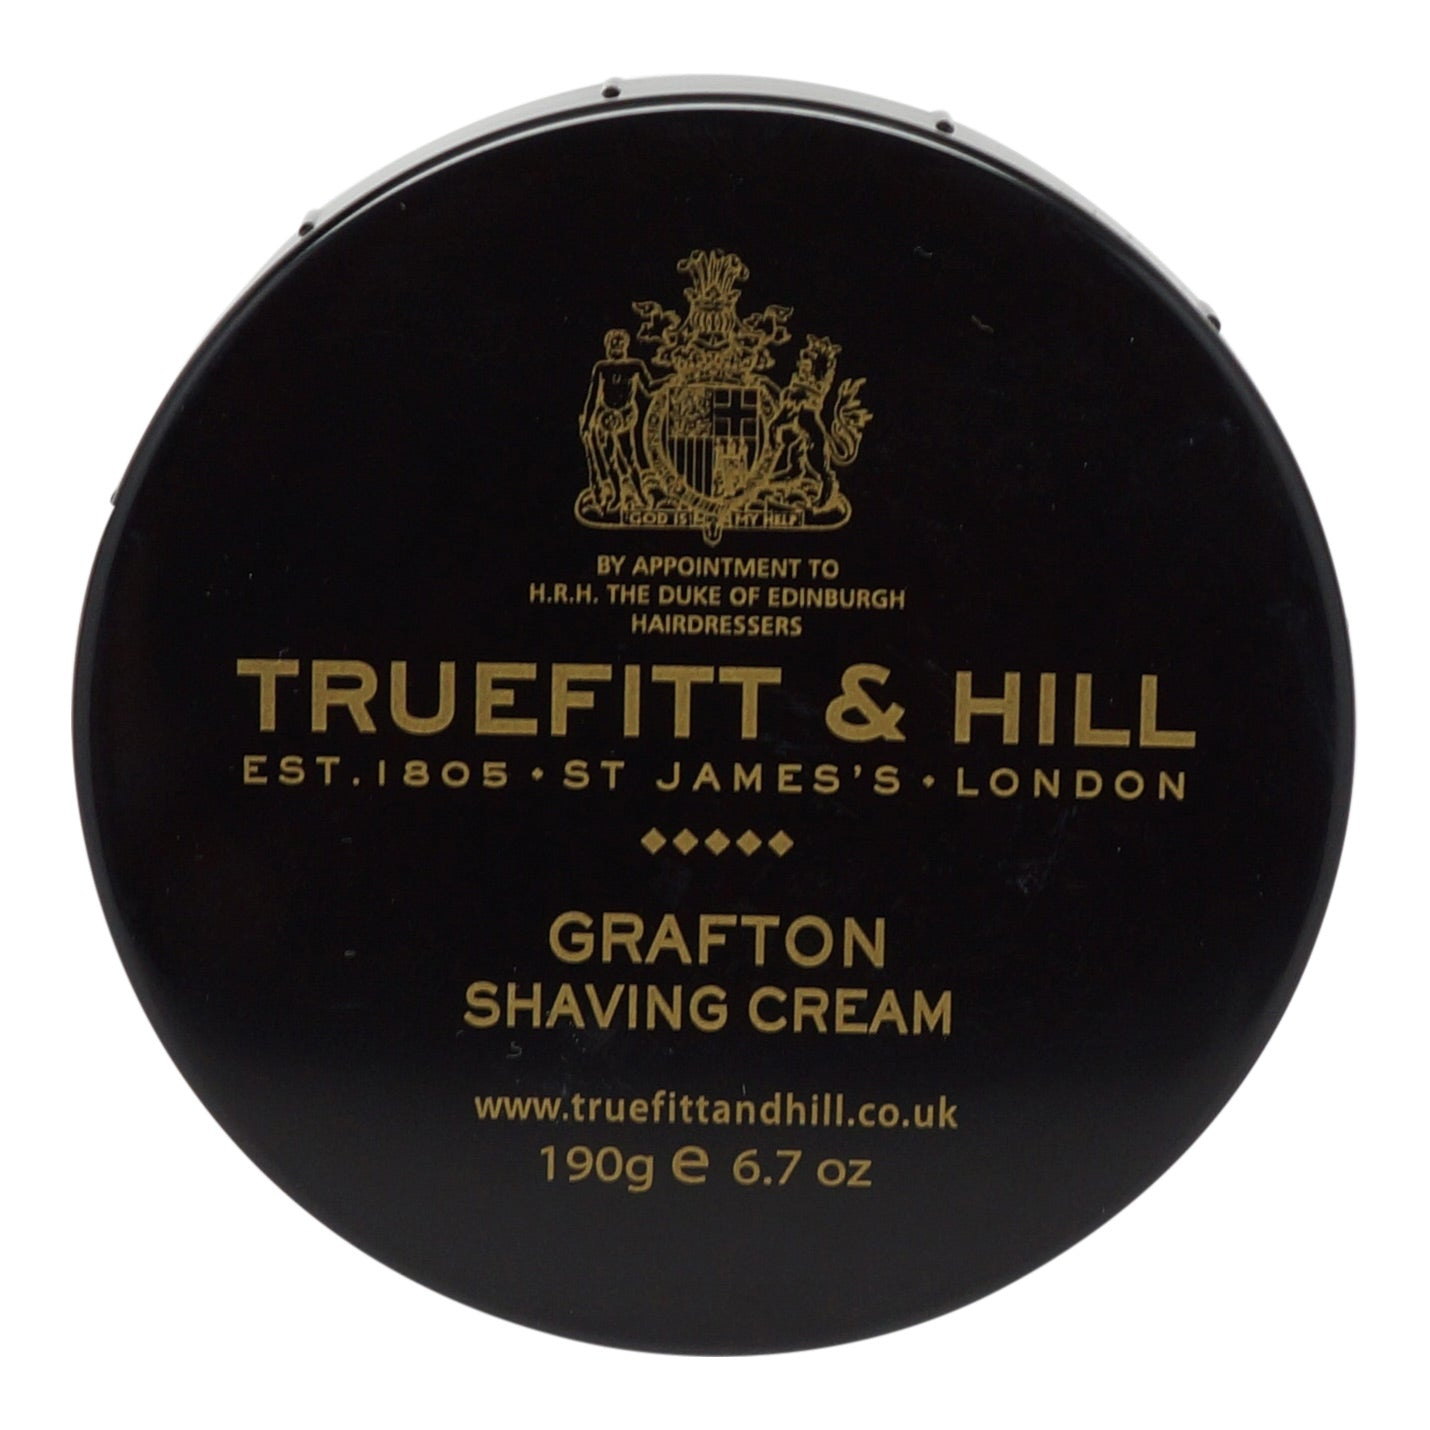 Truefitt & Hill Grafton Shaving Cream 6.7 oz.